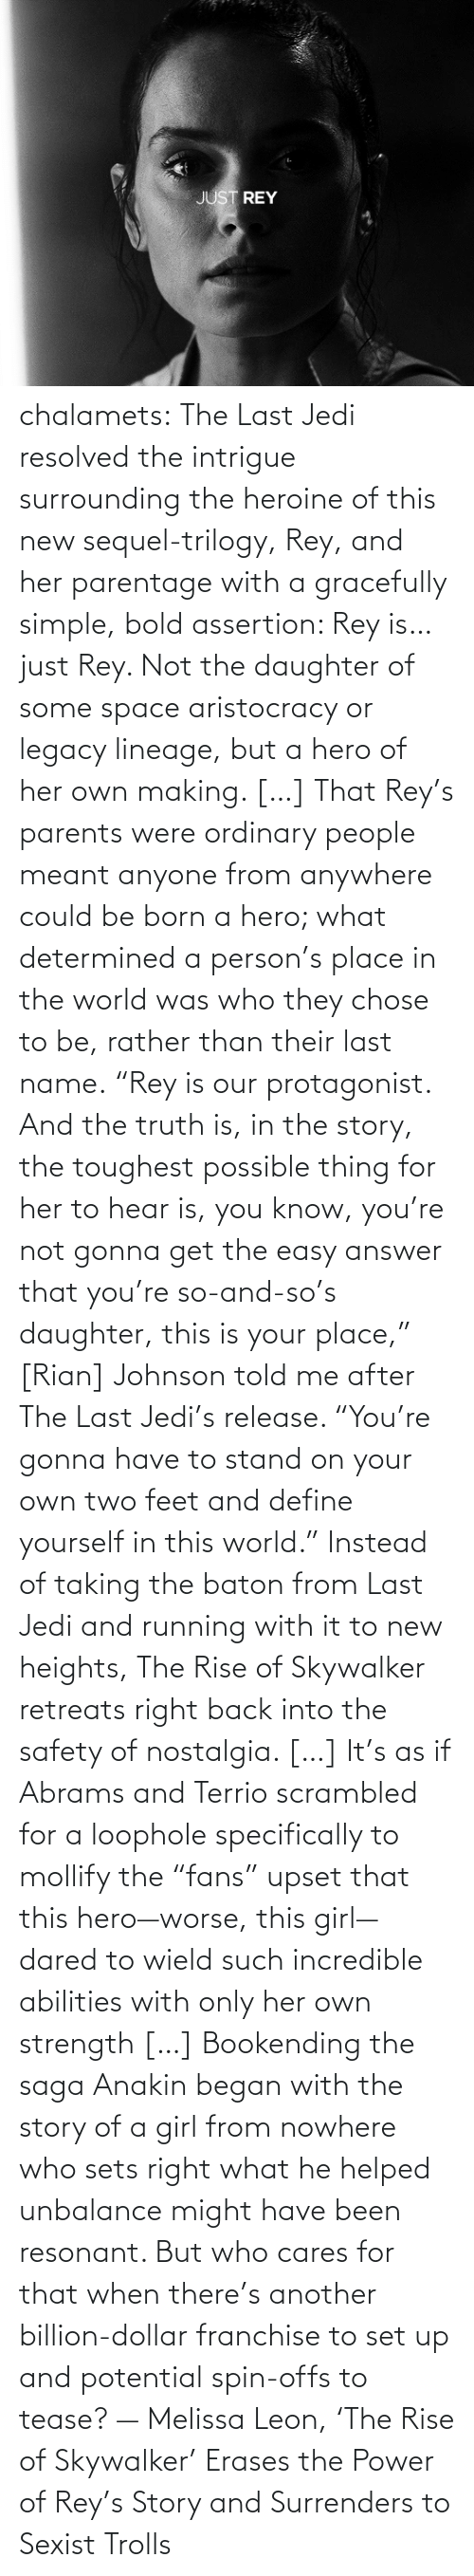 "might: chalamets:  The Last Jedi resolved the intrigue surrounding the heroine of this new sequel-trilogy, Rey, and her parentage with a gracefully simple, bold assertion: Rey is… just Rey. Not the daughter of some space aristocracy or legacy lineage, but a hero of her own making. […] That Rey's parents were ordinary people meant anyone from anywhere could be born a hero; what determined a person's place in the world was who they chose to be, rather than their last name. ""Rey is our protagonist. And the truth is, in the story, the toughest possible thing for her to hear is, you know, you're not gonna get the easy answer that you're so-and-so's daughter, this is your place,"" [Rian] Johnson told me after The Last Jedi's release. ""You're gonna have to stand on your own two feet and define yourself in this world."" Instead of taking the baton from Last Jedi and running with it to new heights, The Rise of Skywalker retreats right back into the safety of nostalgia. […] It's as if Abrams and Terrio scrambled for a loophole specifically to mollify the ""fans"" upset that this hero—worse, this girl—dared to wield such incredible abilities with only her own strength […] Bookending the saga Anakin began with the story of a girl from nowhere who sets right what he helped unbalance might have been resonant. But who cares for that when there's another billion-dollar franchise to set up and potential spin-offs to tease? — Melissa Leon, 'The Rise of Skywalker' Erases the Power of Rey's Story and Surrenders to Sexist Trolls"